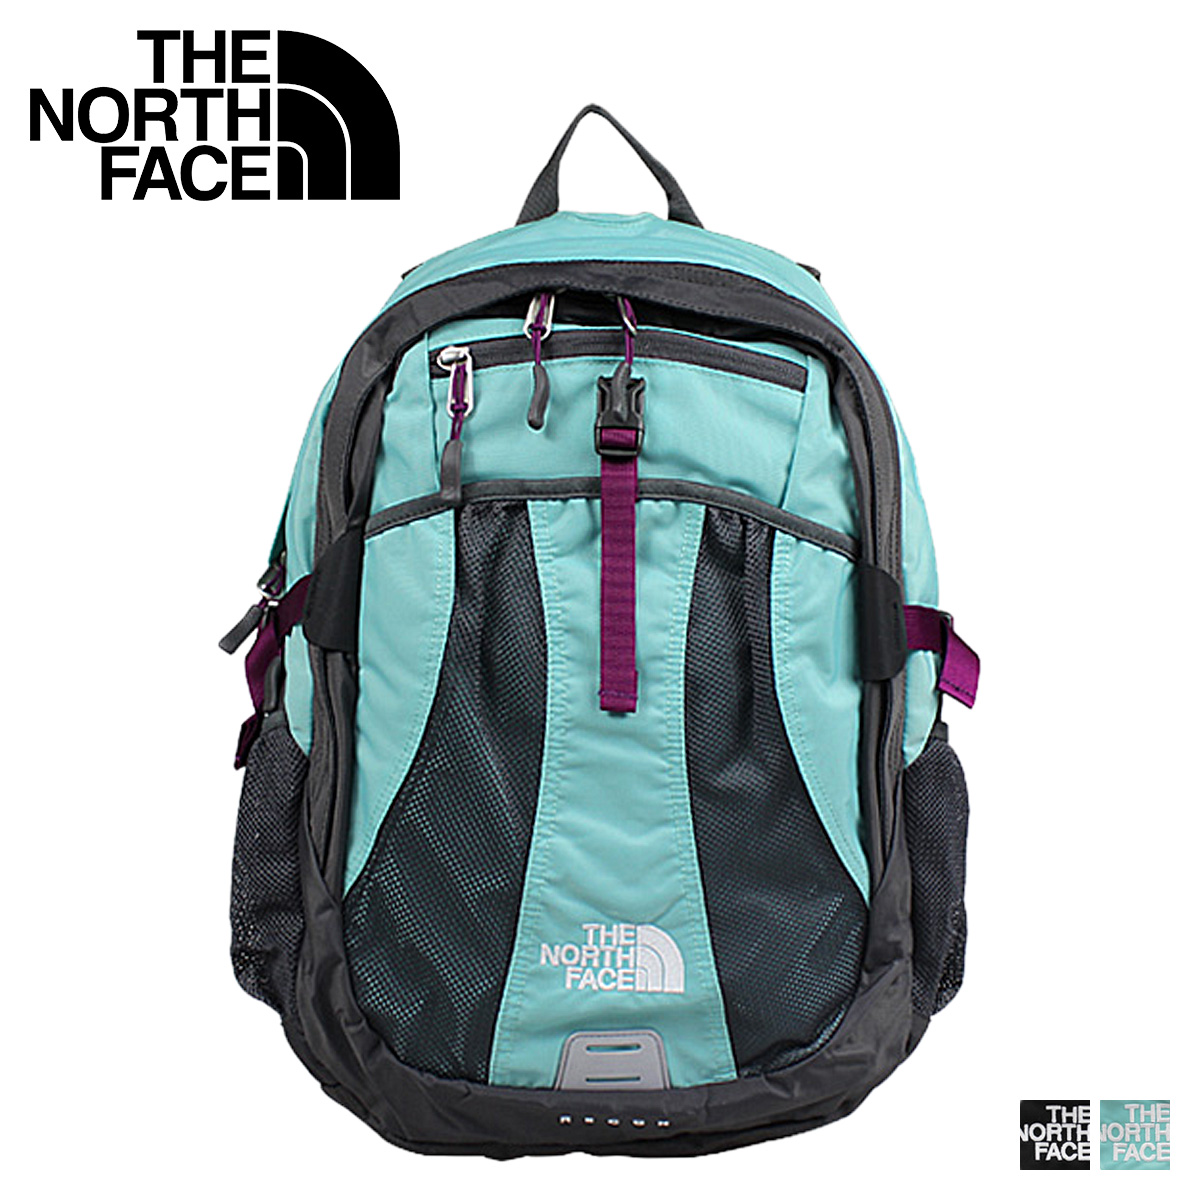 8ff1e49c1 North Face THE NORTH FACE backpack rucksack 2 color WOMEN'S RECON BACKPACK  A93E Lady's